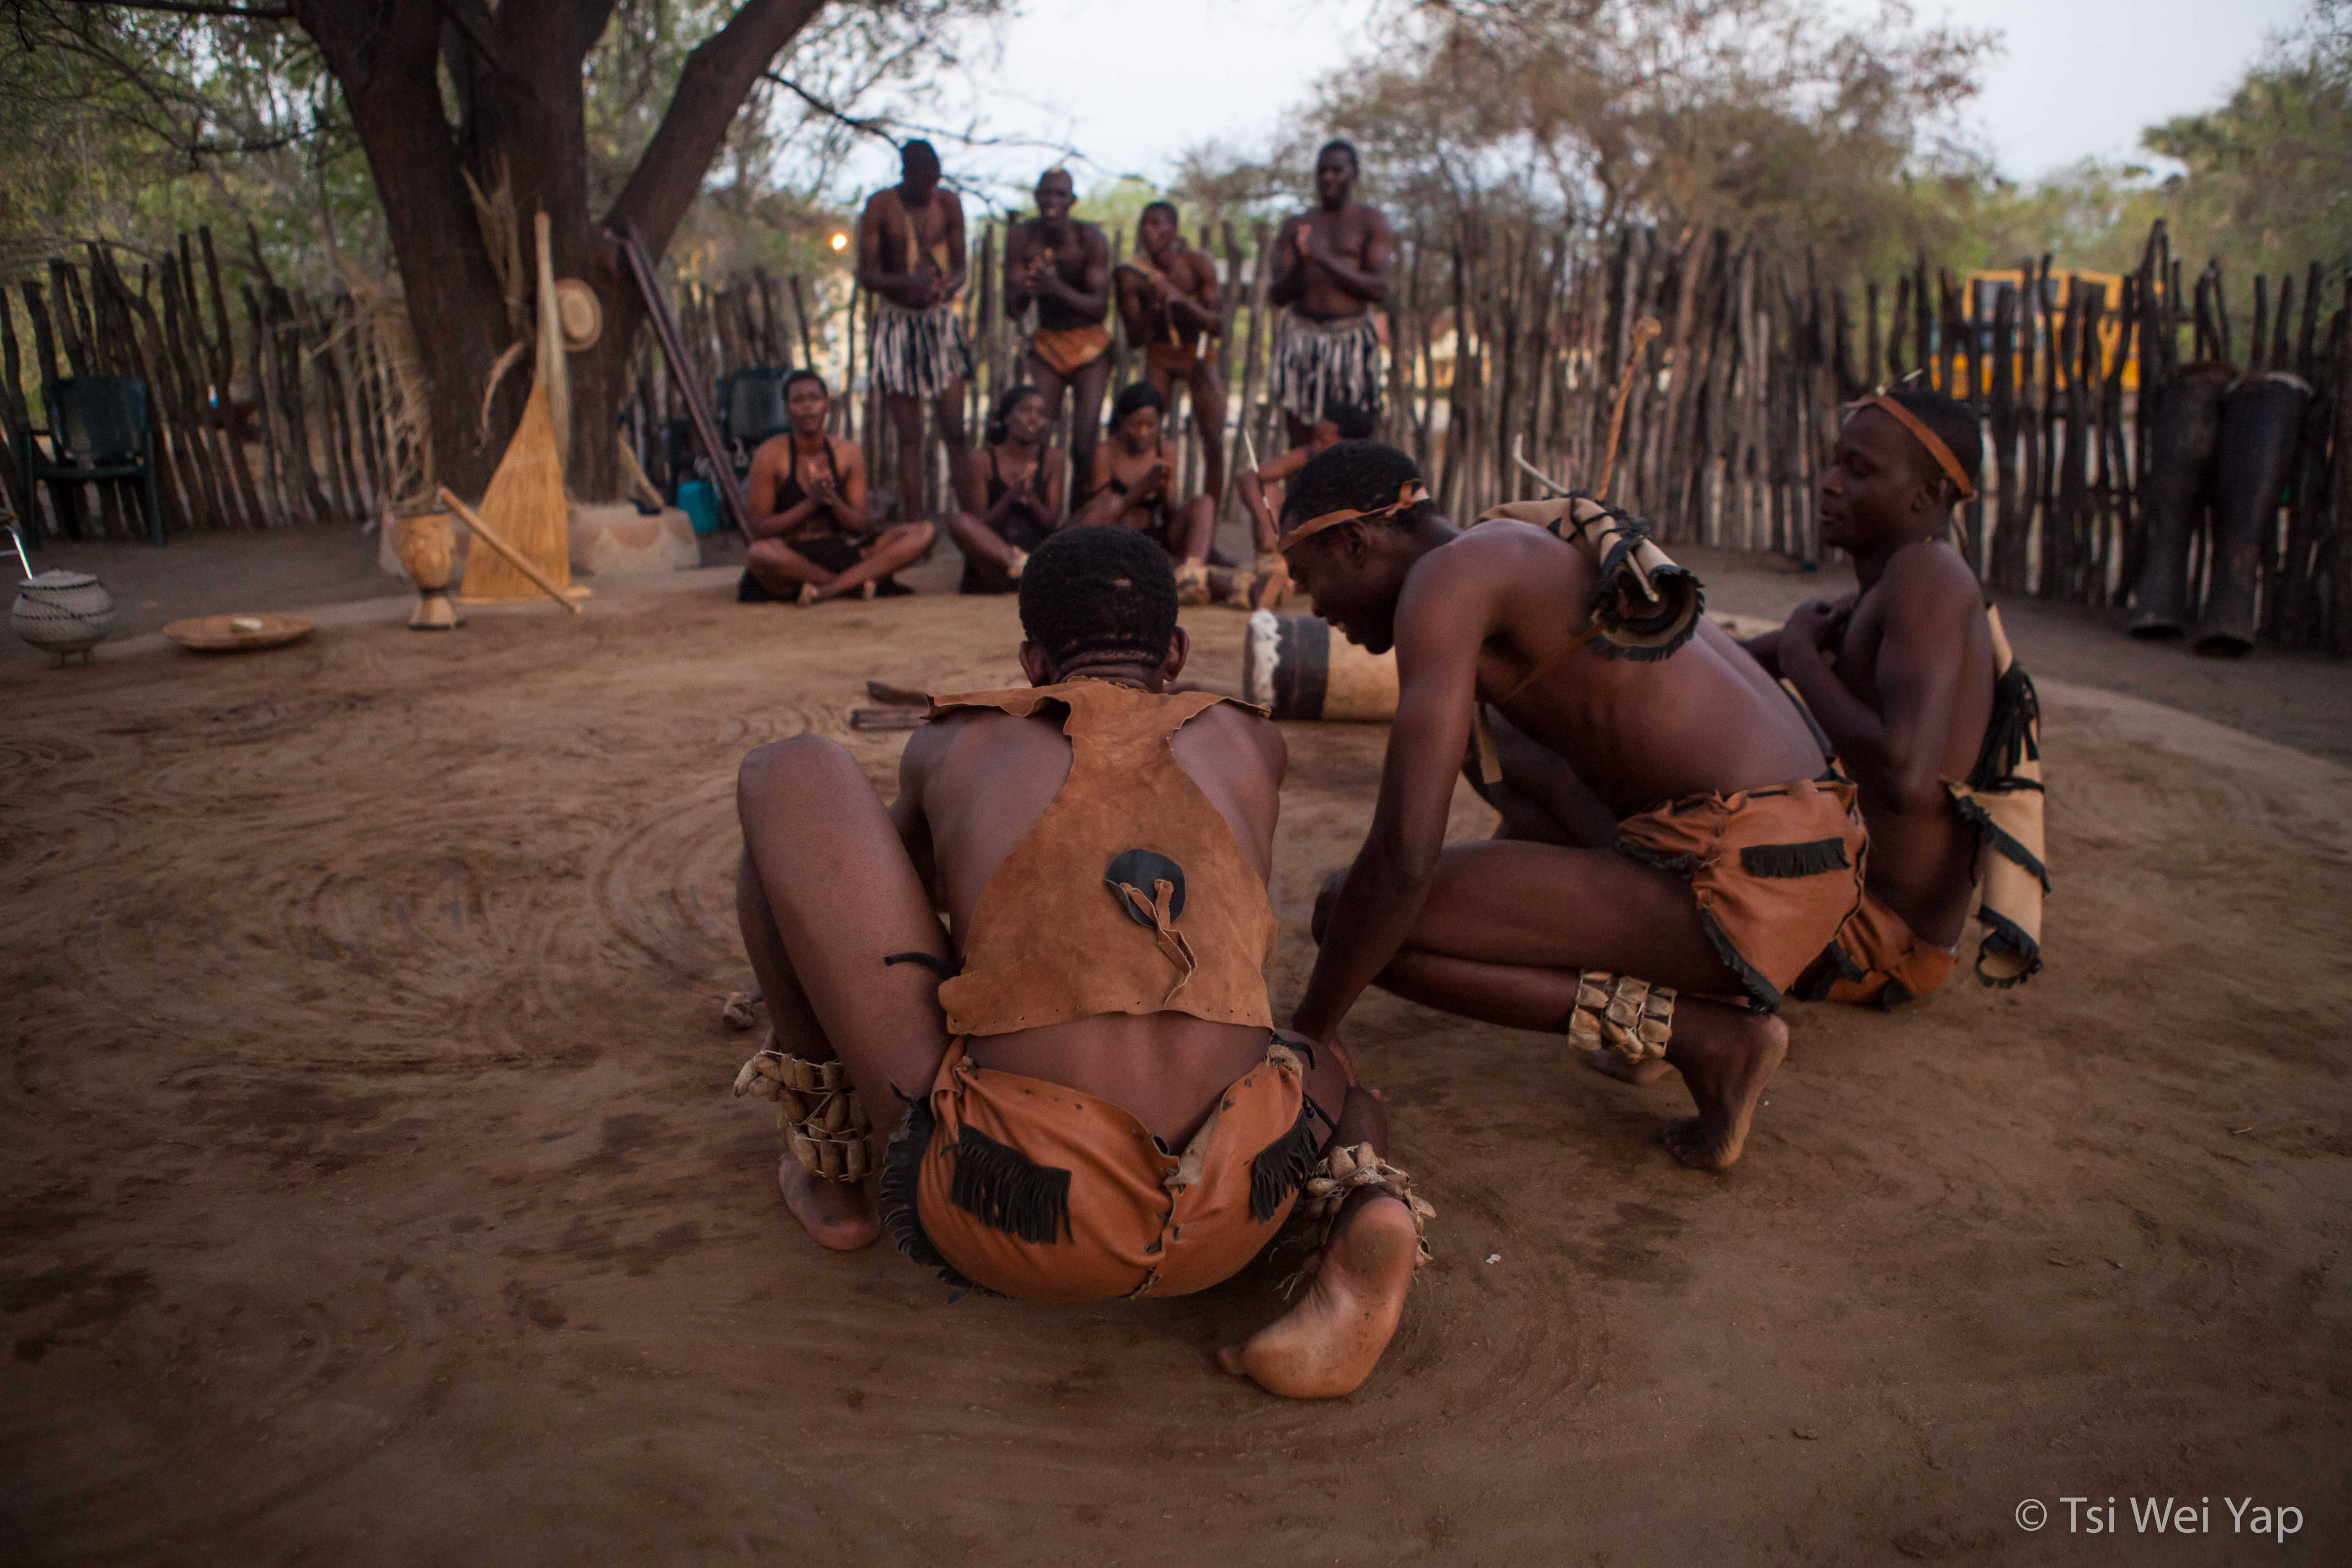 Tribal Gathering Demonstration - Maun